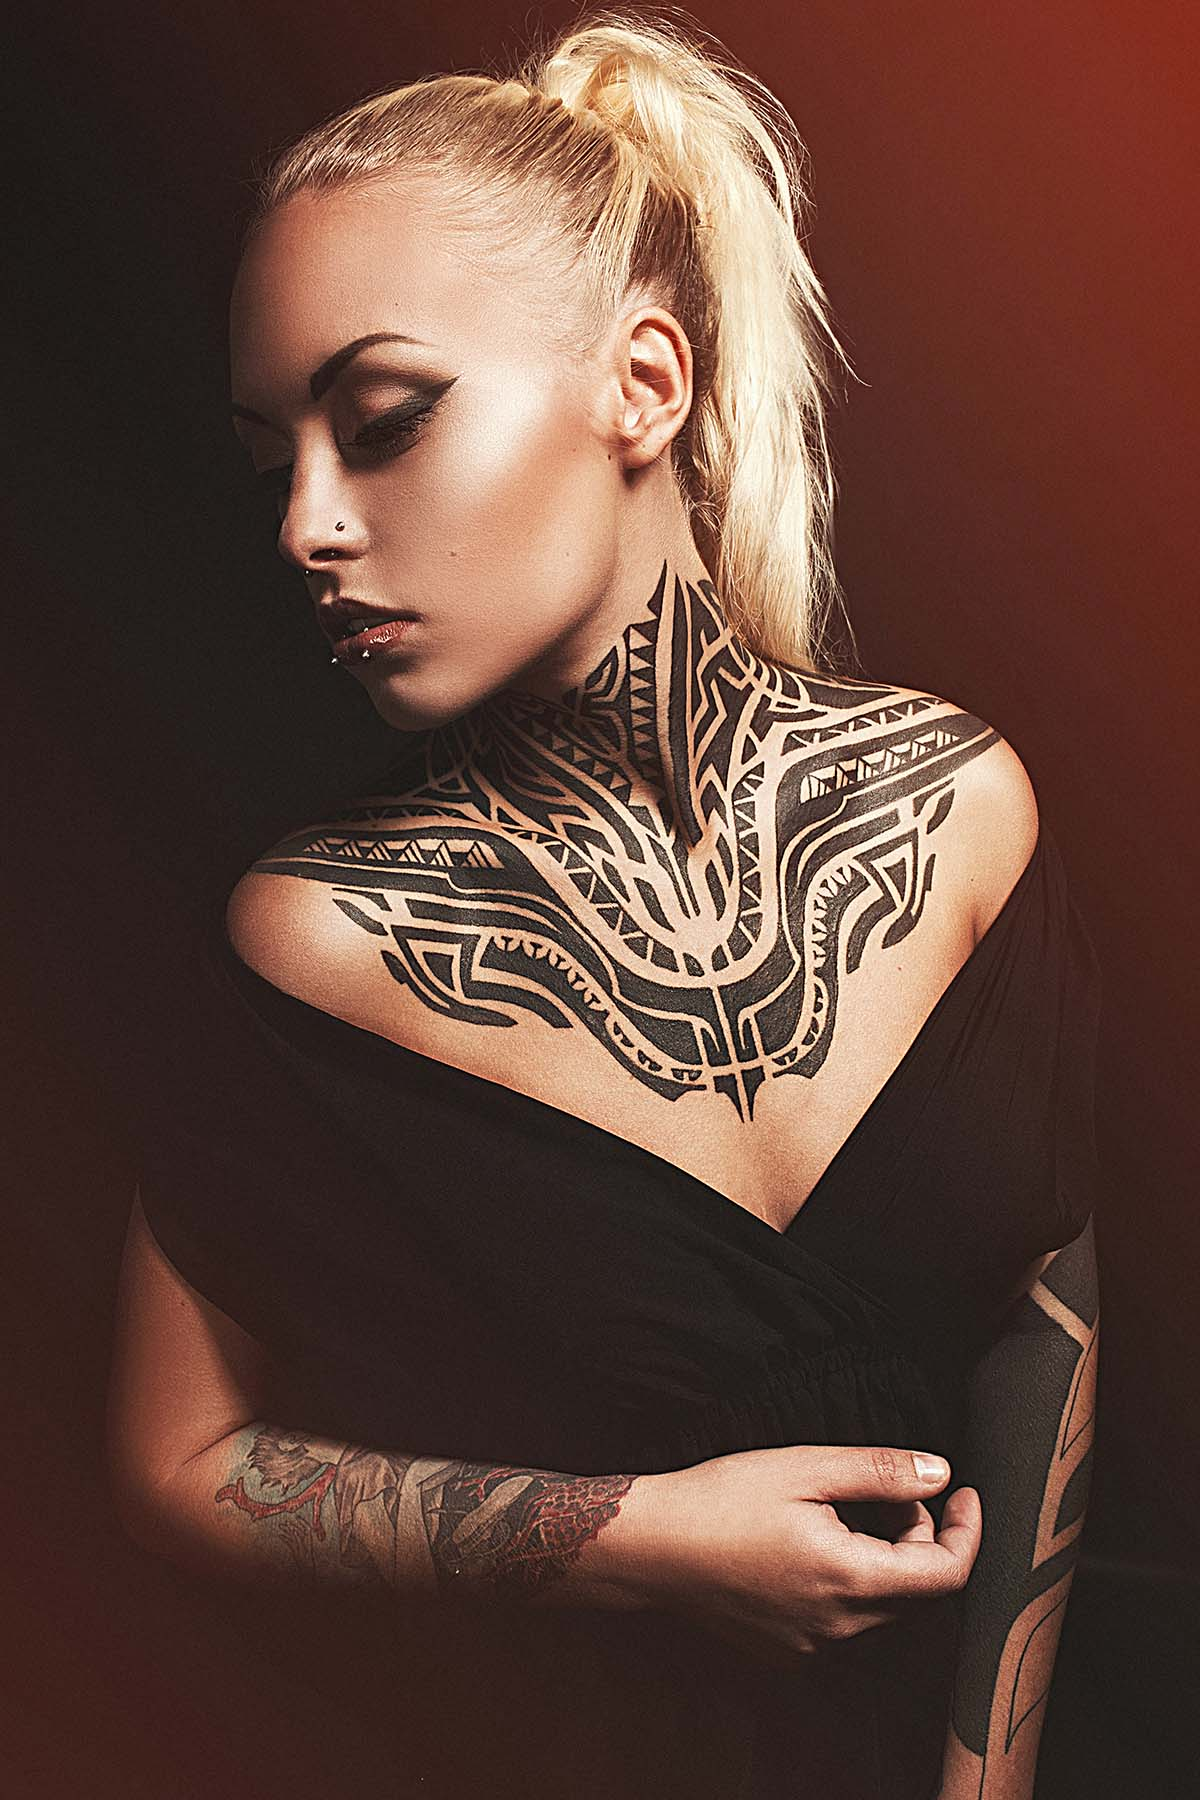 Female tattoos tumblr designs quotes on side of ribs on for Hot tattooed babes